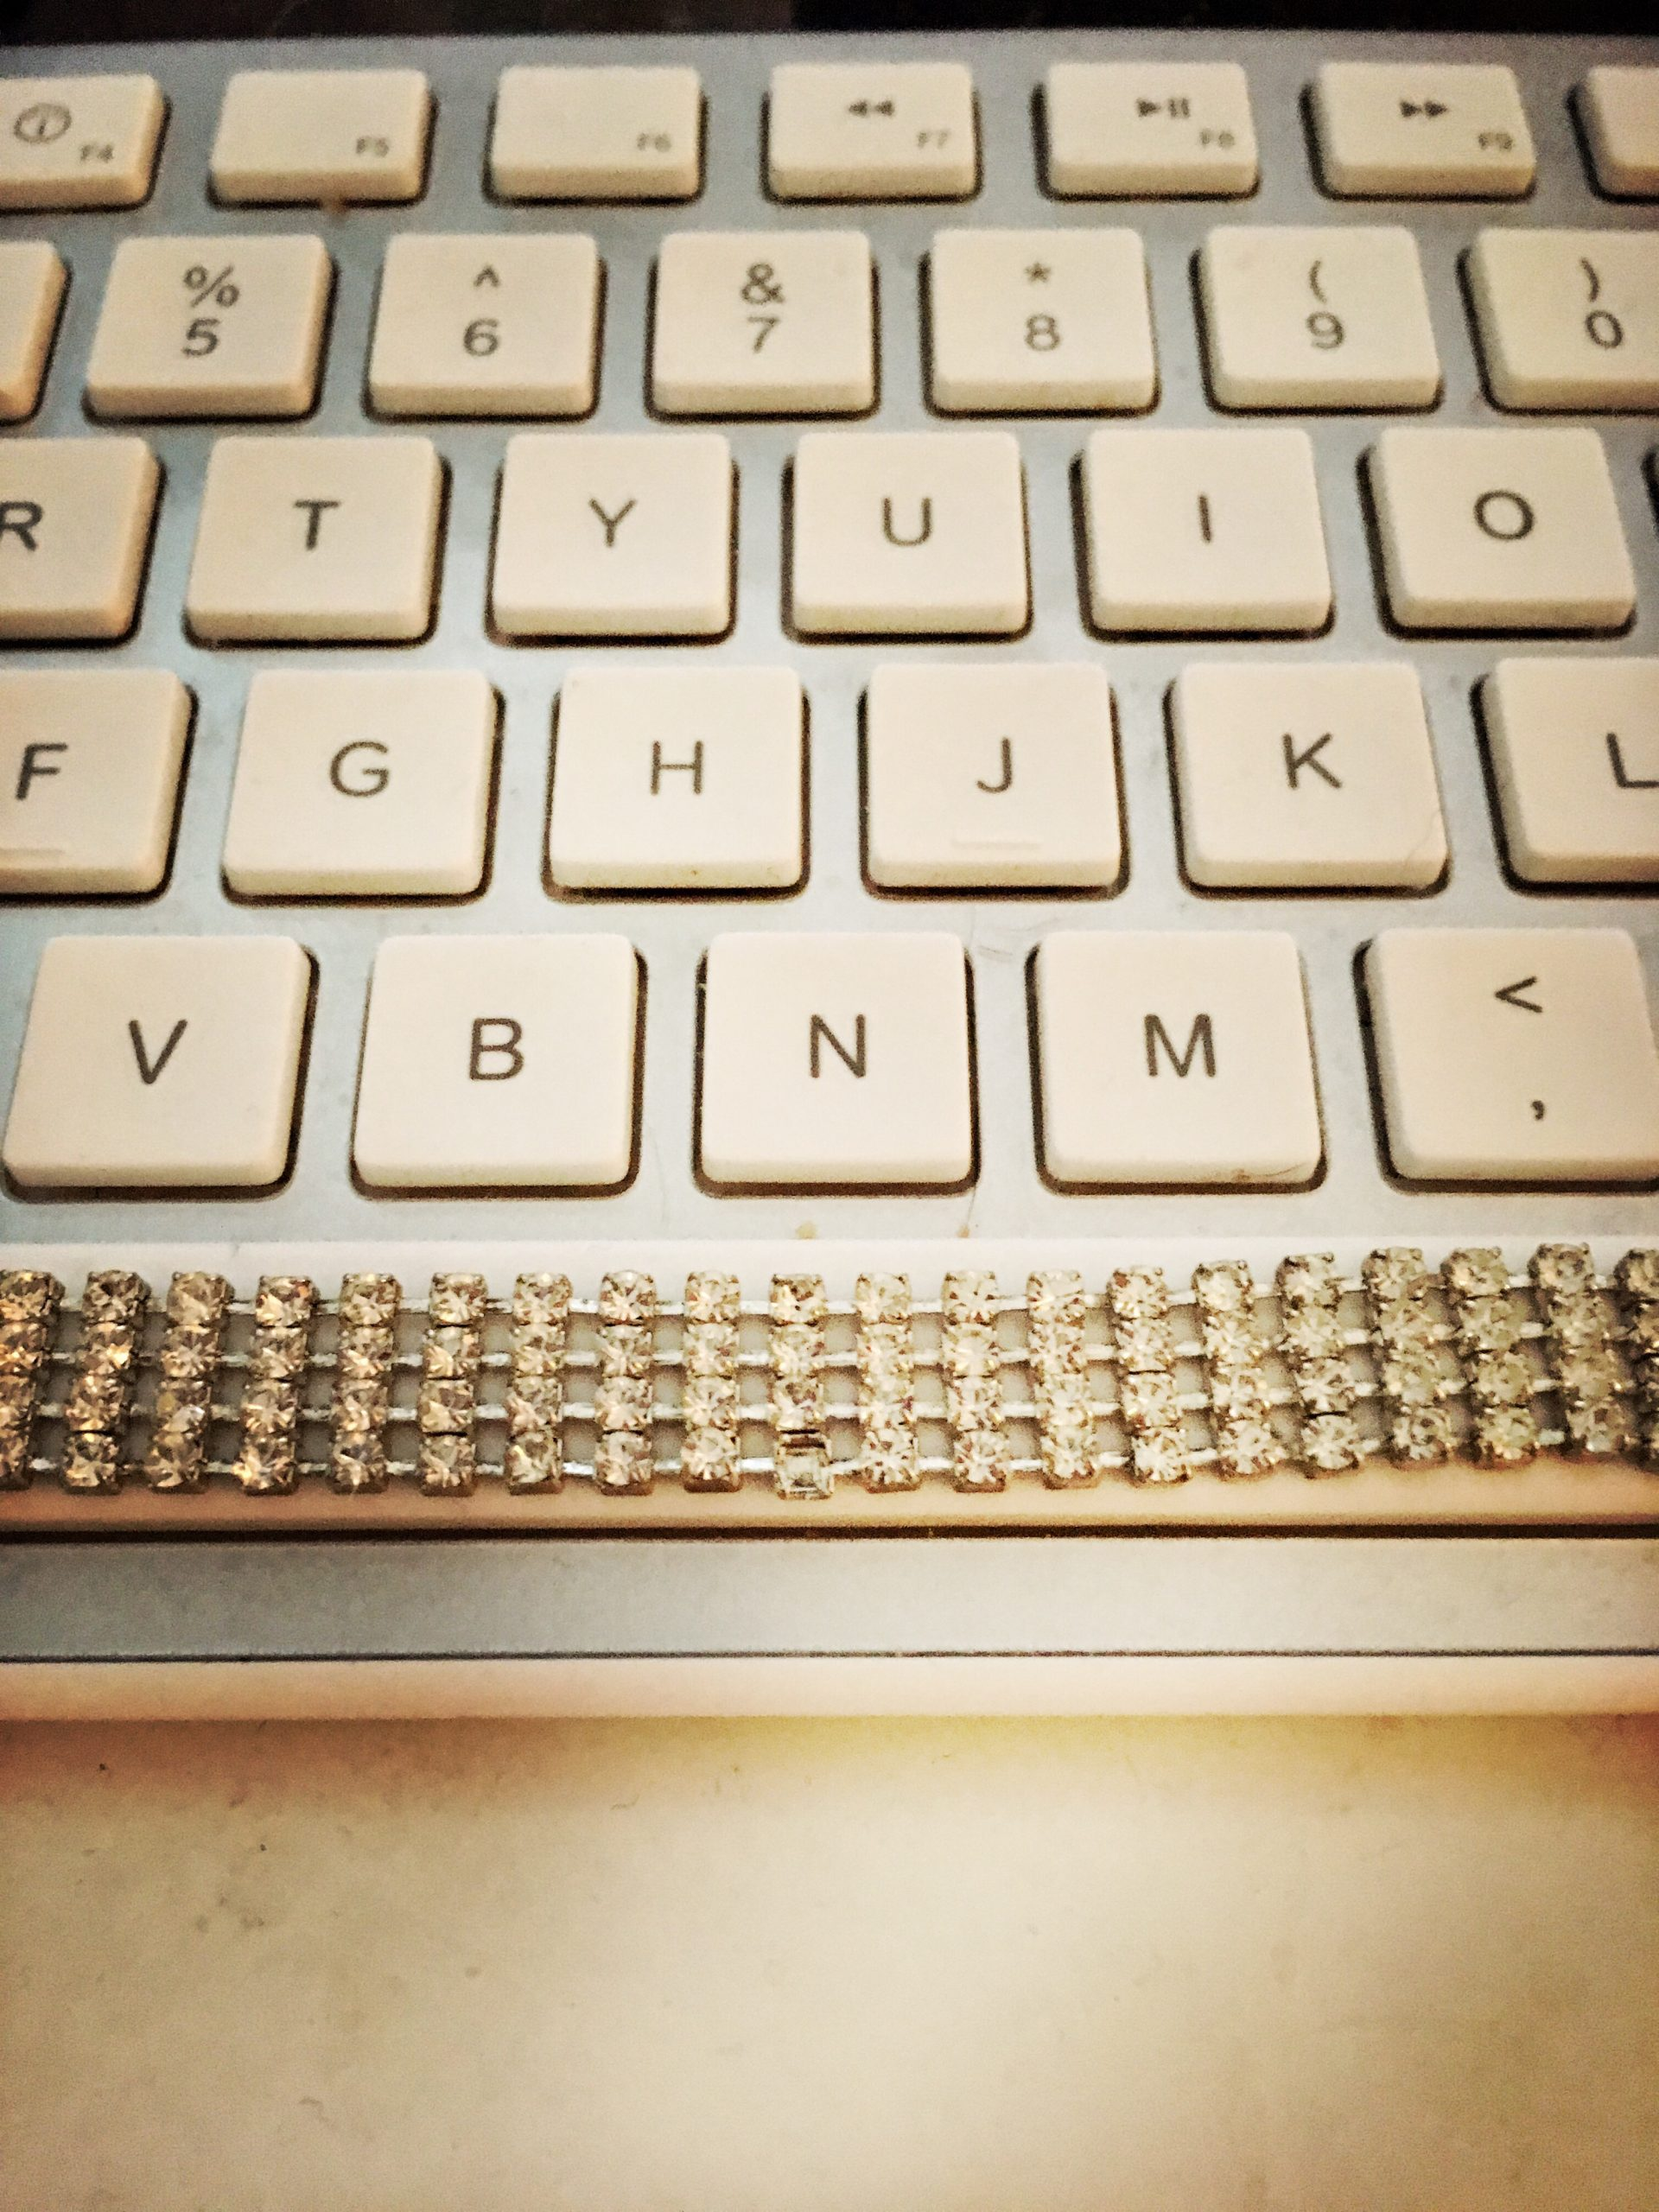 Frost your keyboard